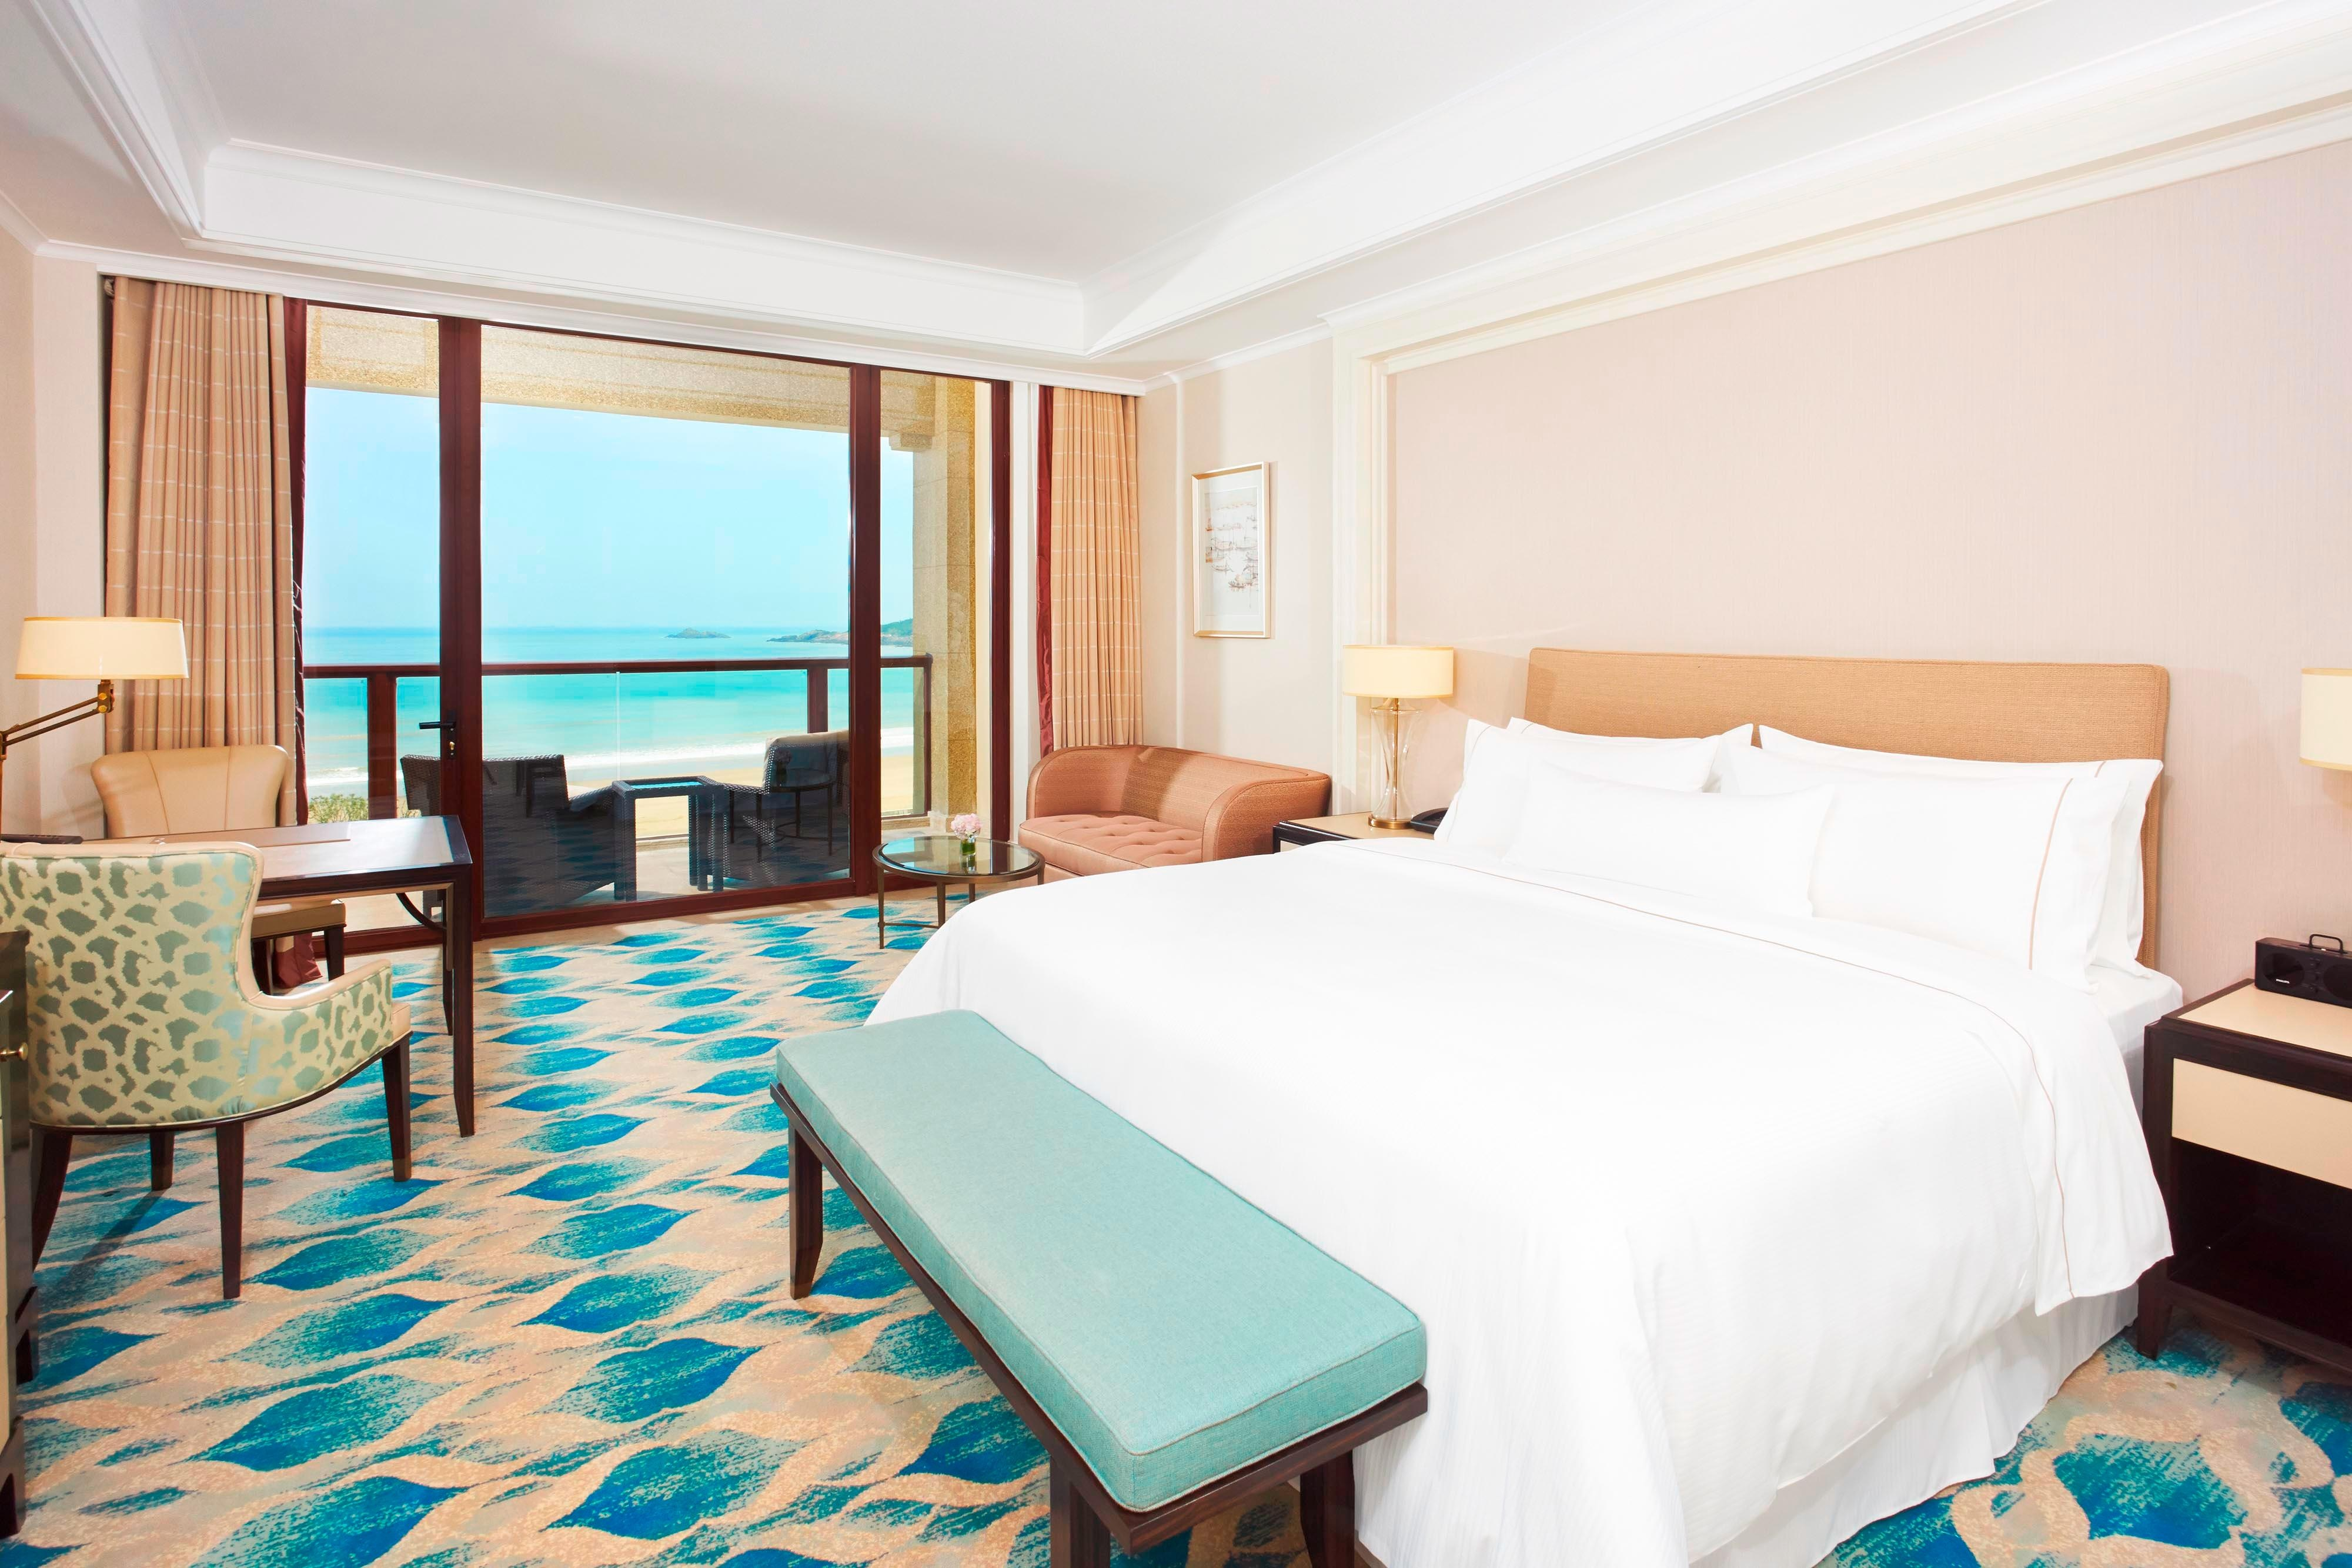 Grand Deluxe Seaview Room